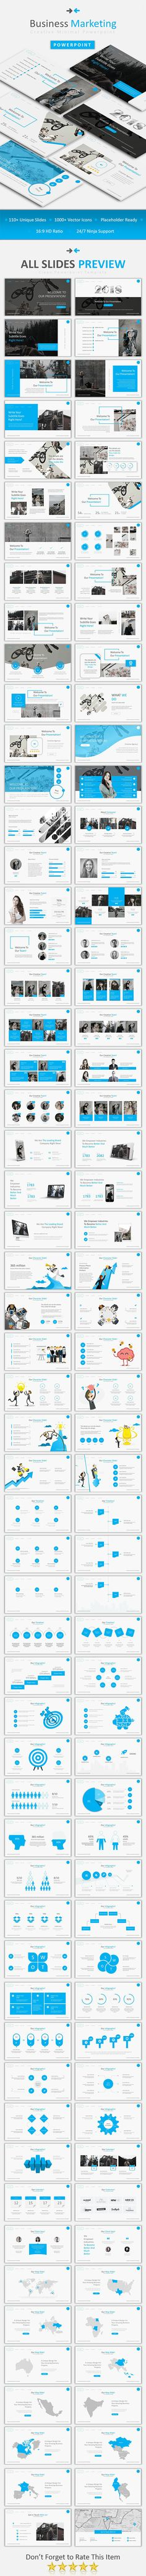 Business Marketing #Powerpoint - #Business PowerPoint #Templates